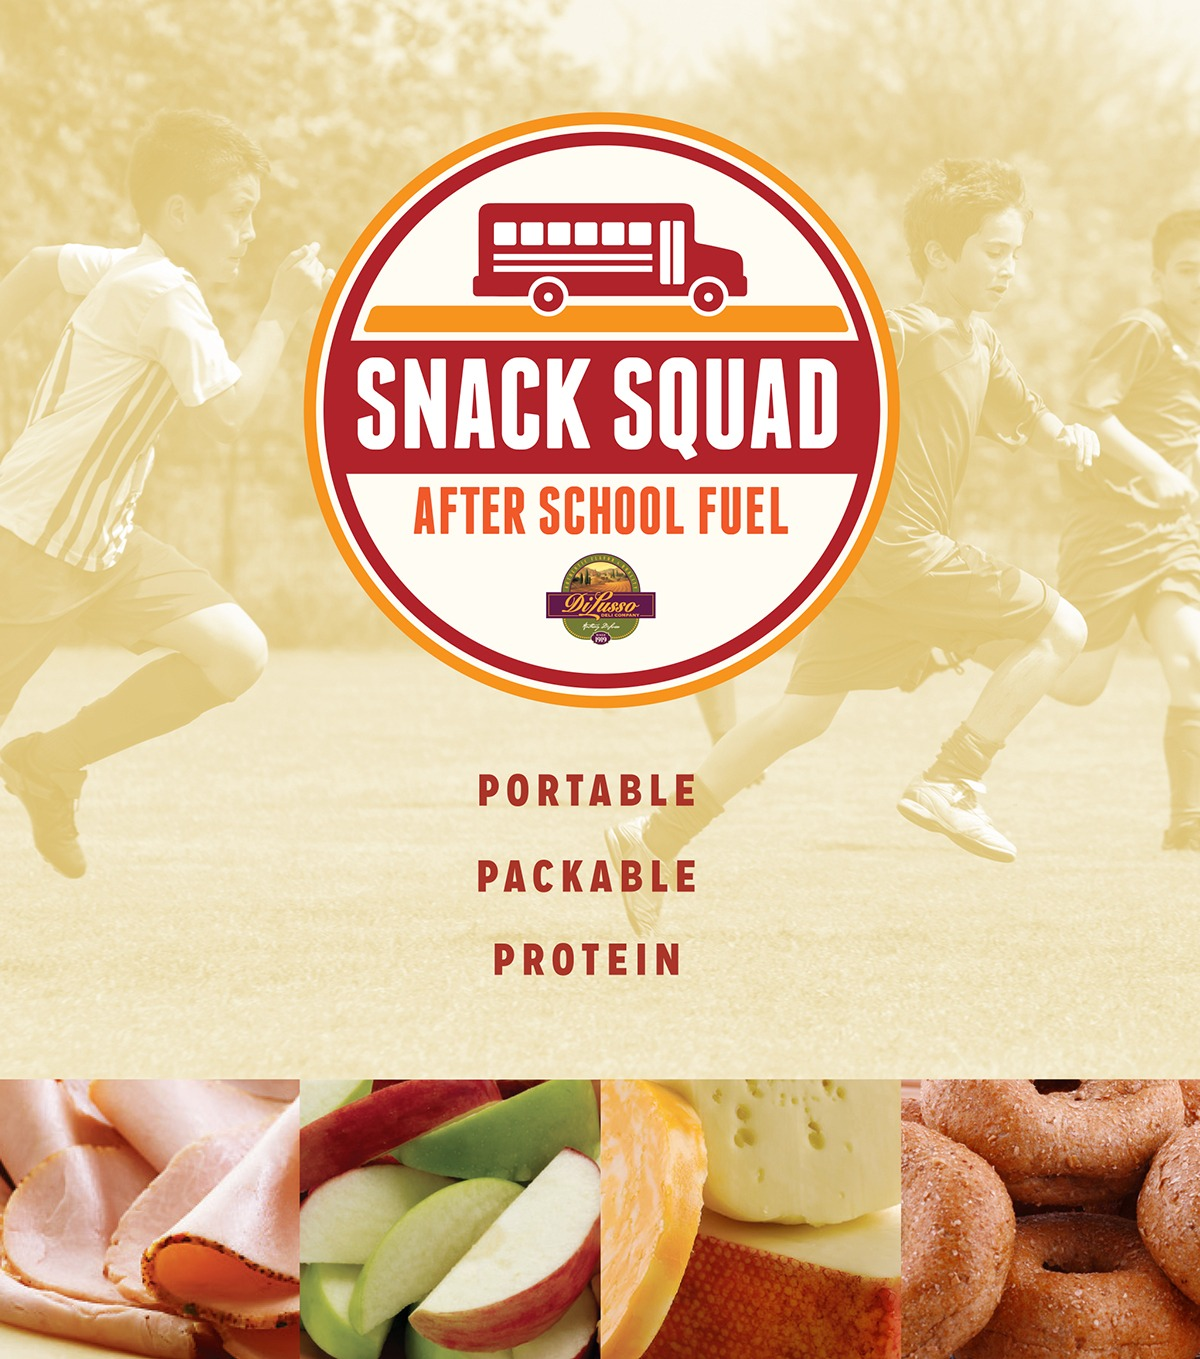 Snack Squad – After School Fuel